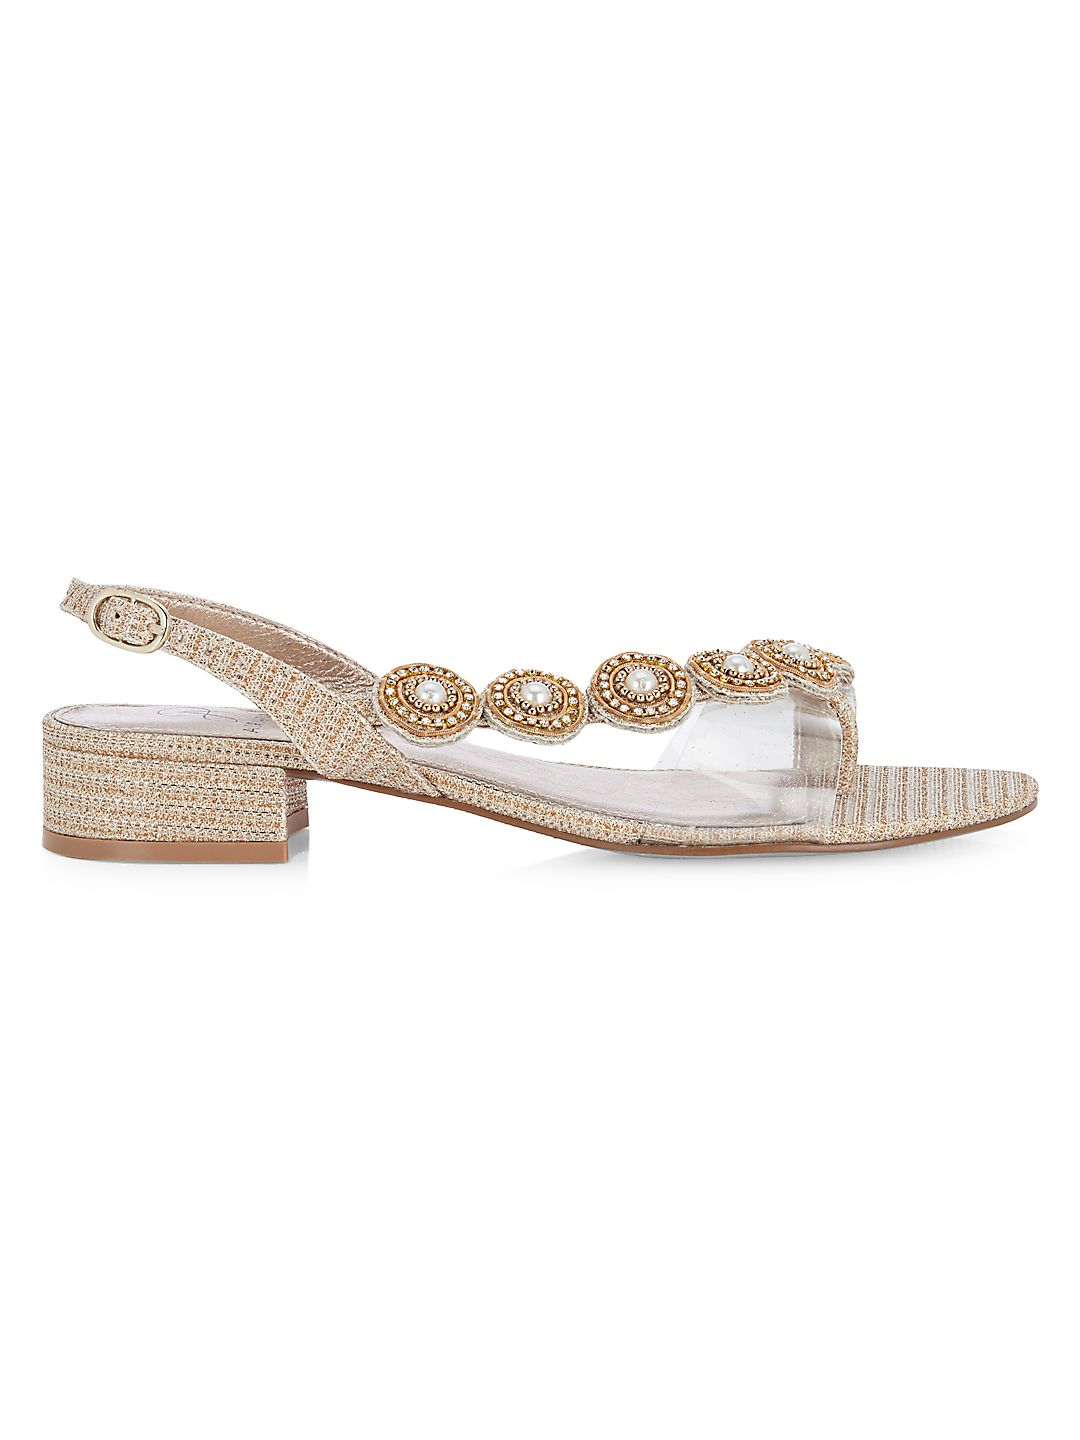 Daisy Asymmetrical Embellished Sandals